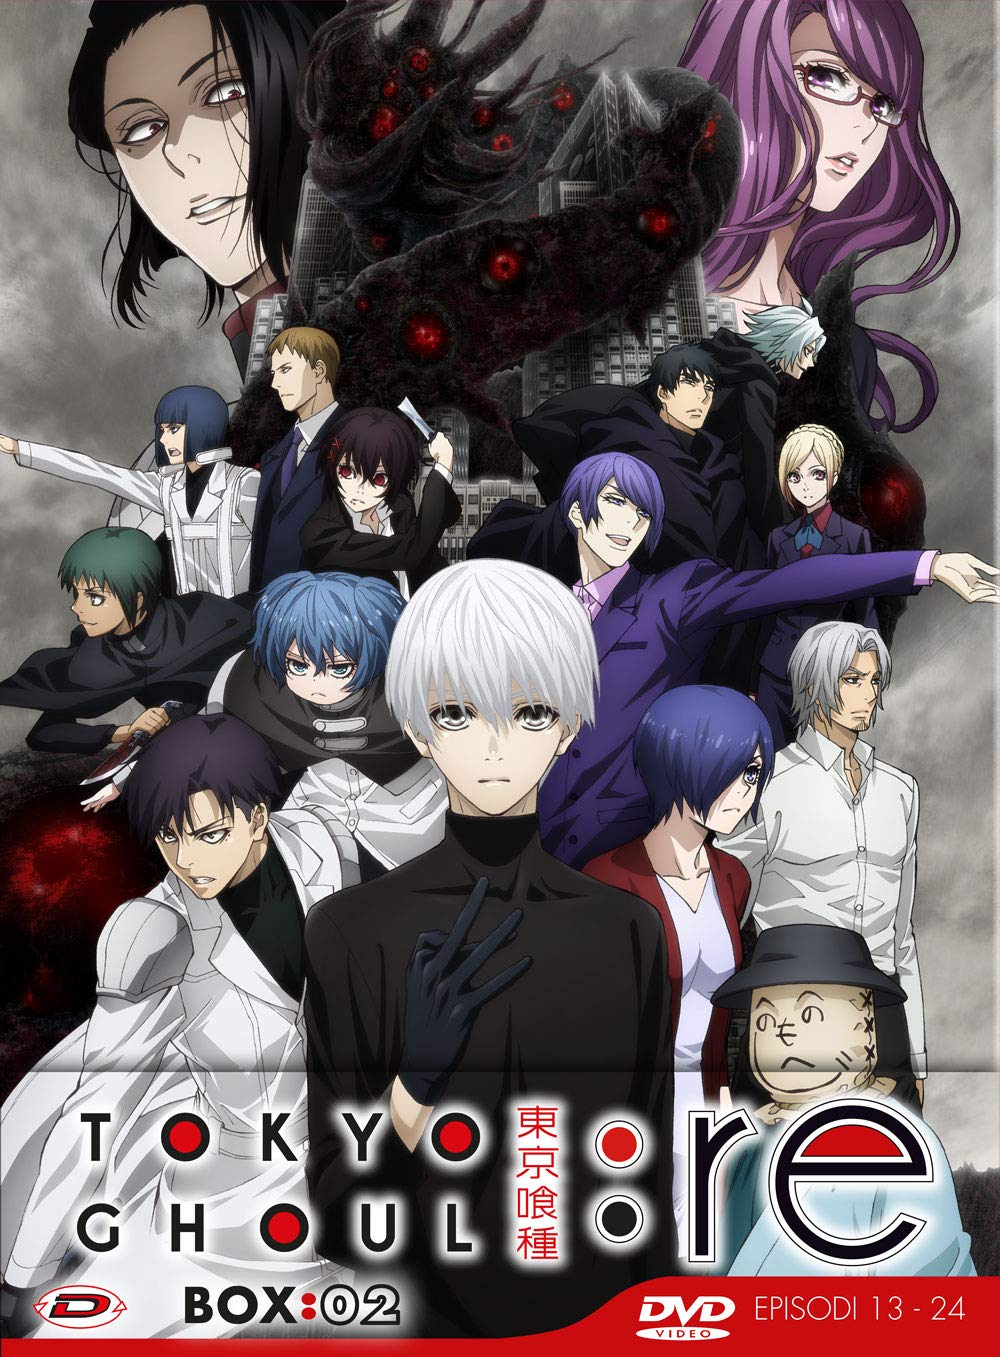 COF.TOKYO GHOUL: RE - STAGIONE 03 BOX 02 (EPS 13-24) (3 DVD) (ED